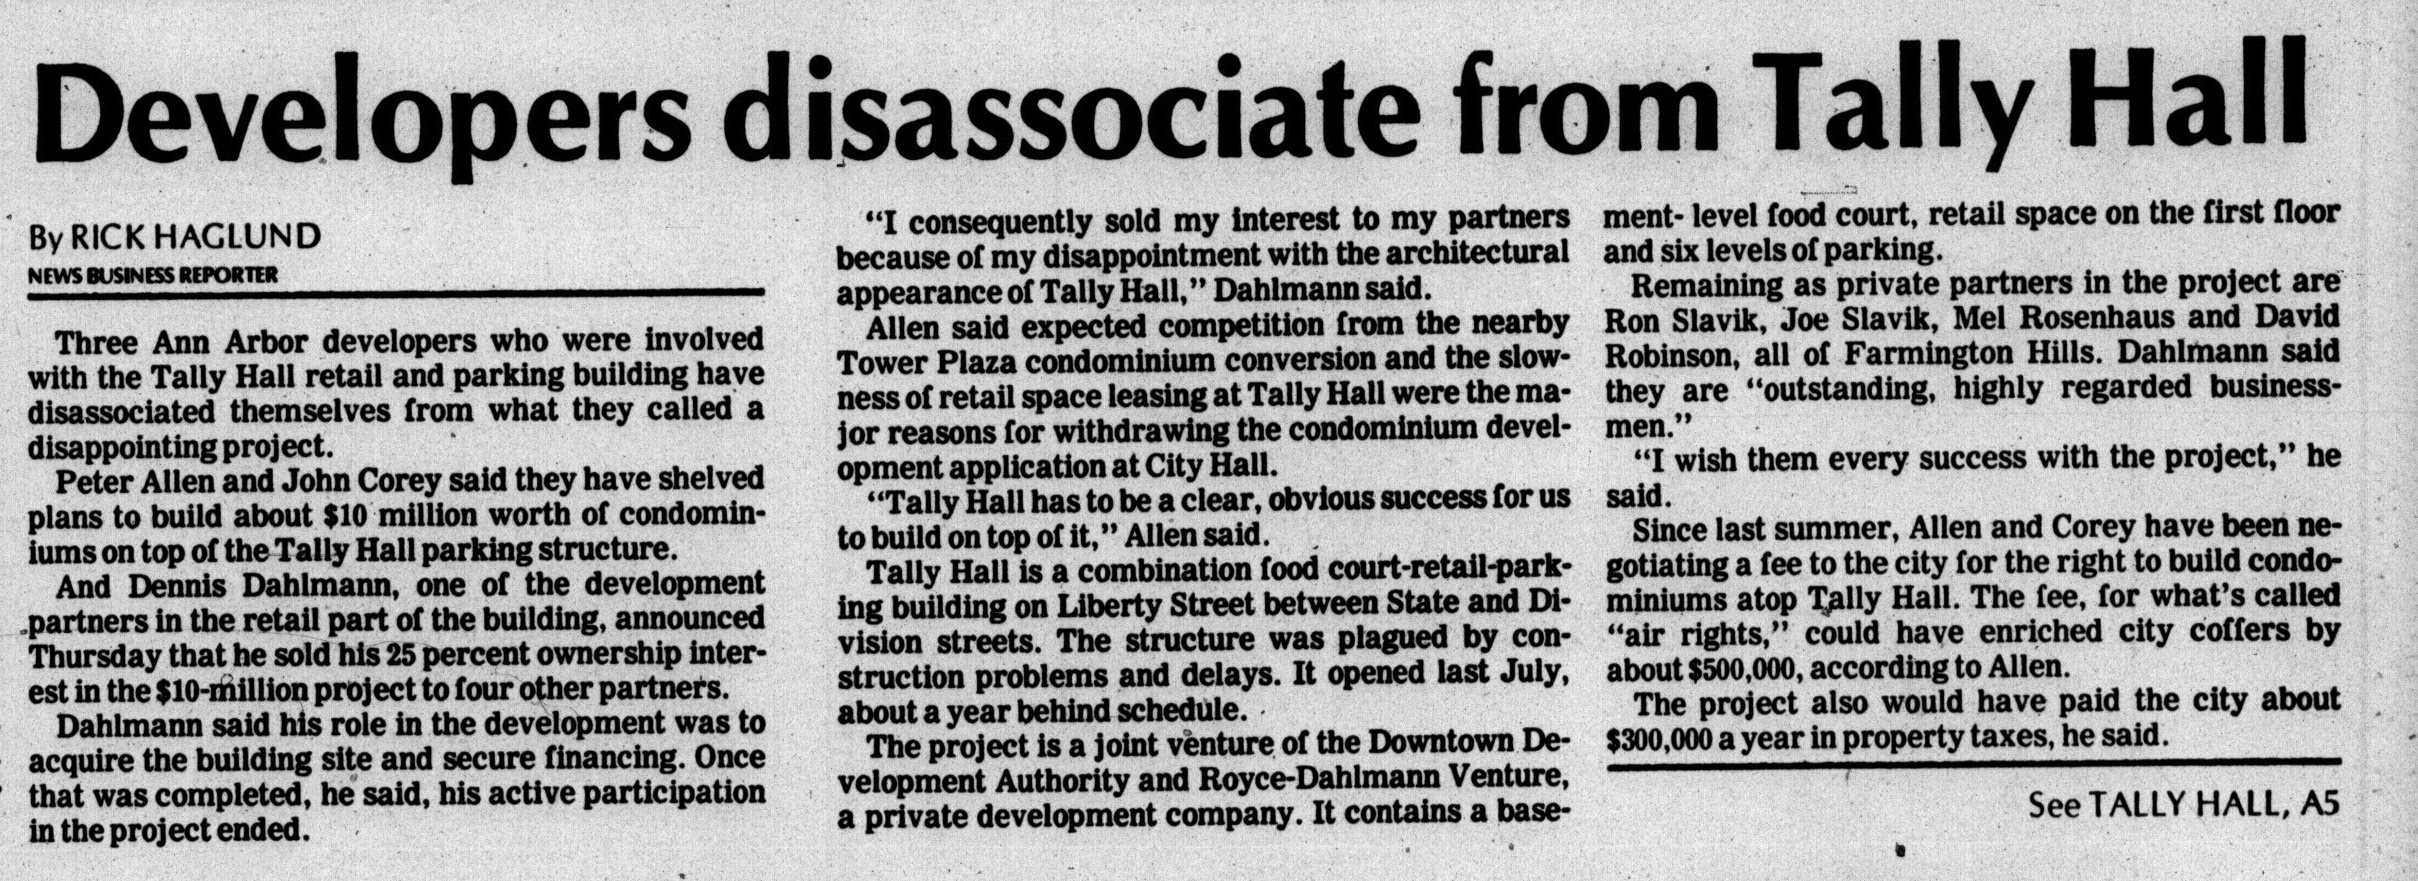 Developers disassociate from Tally Hall image